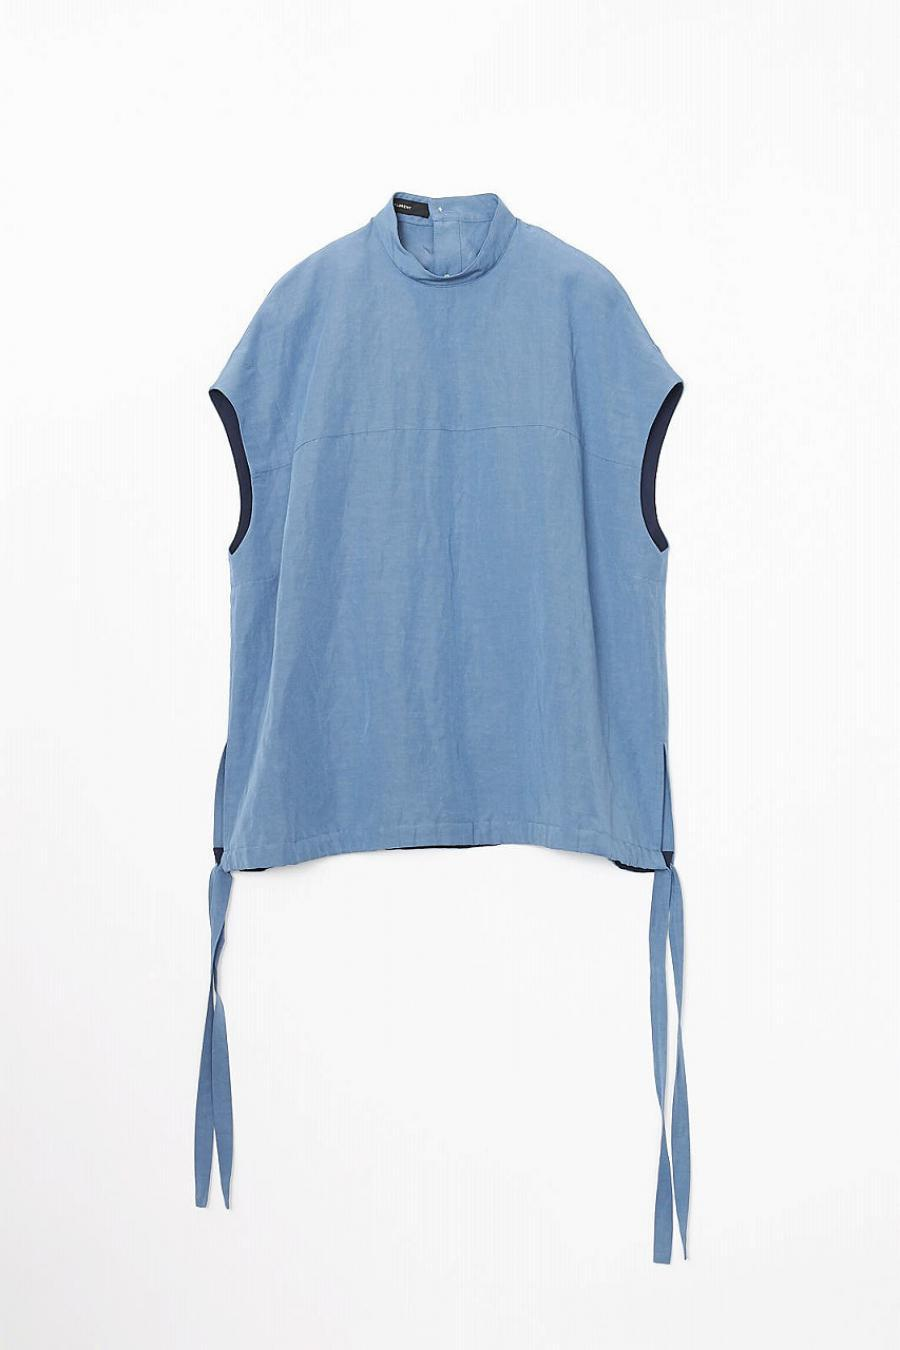 Hight-Neck Blouse